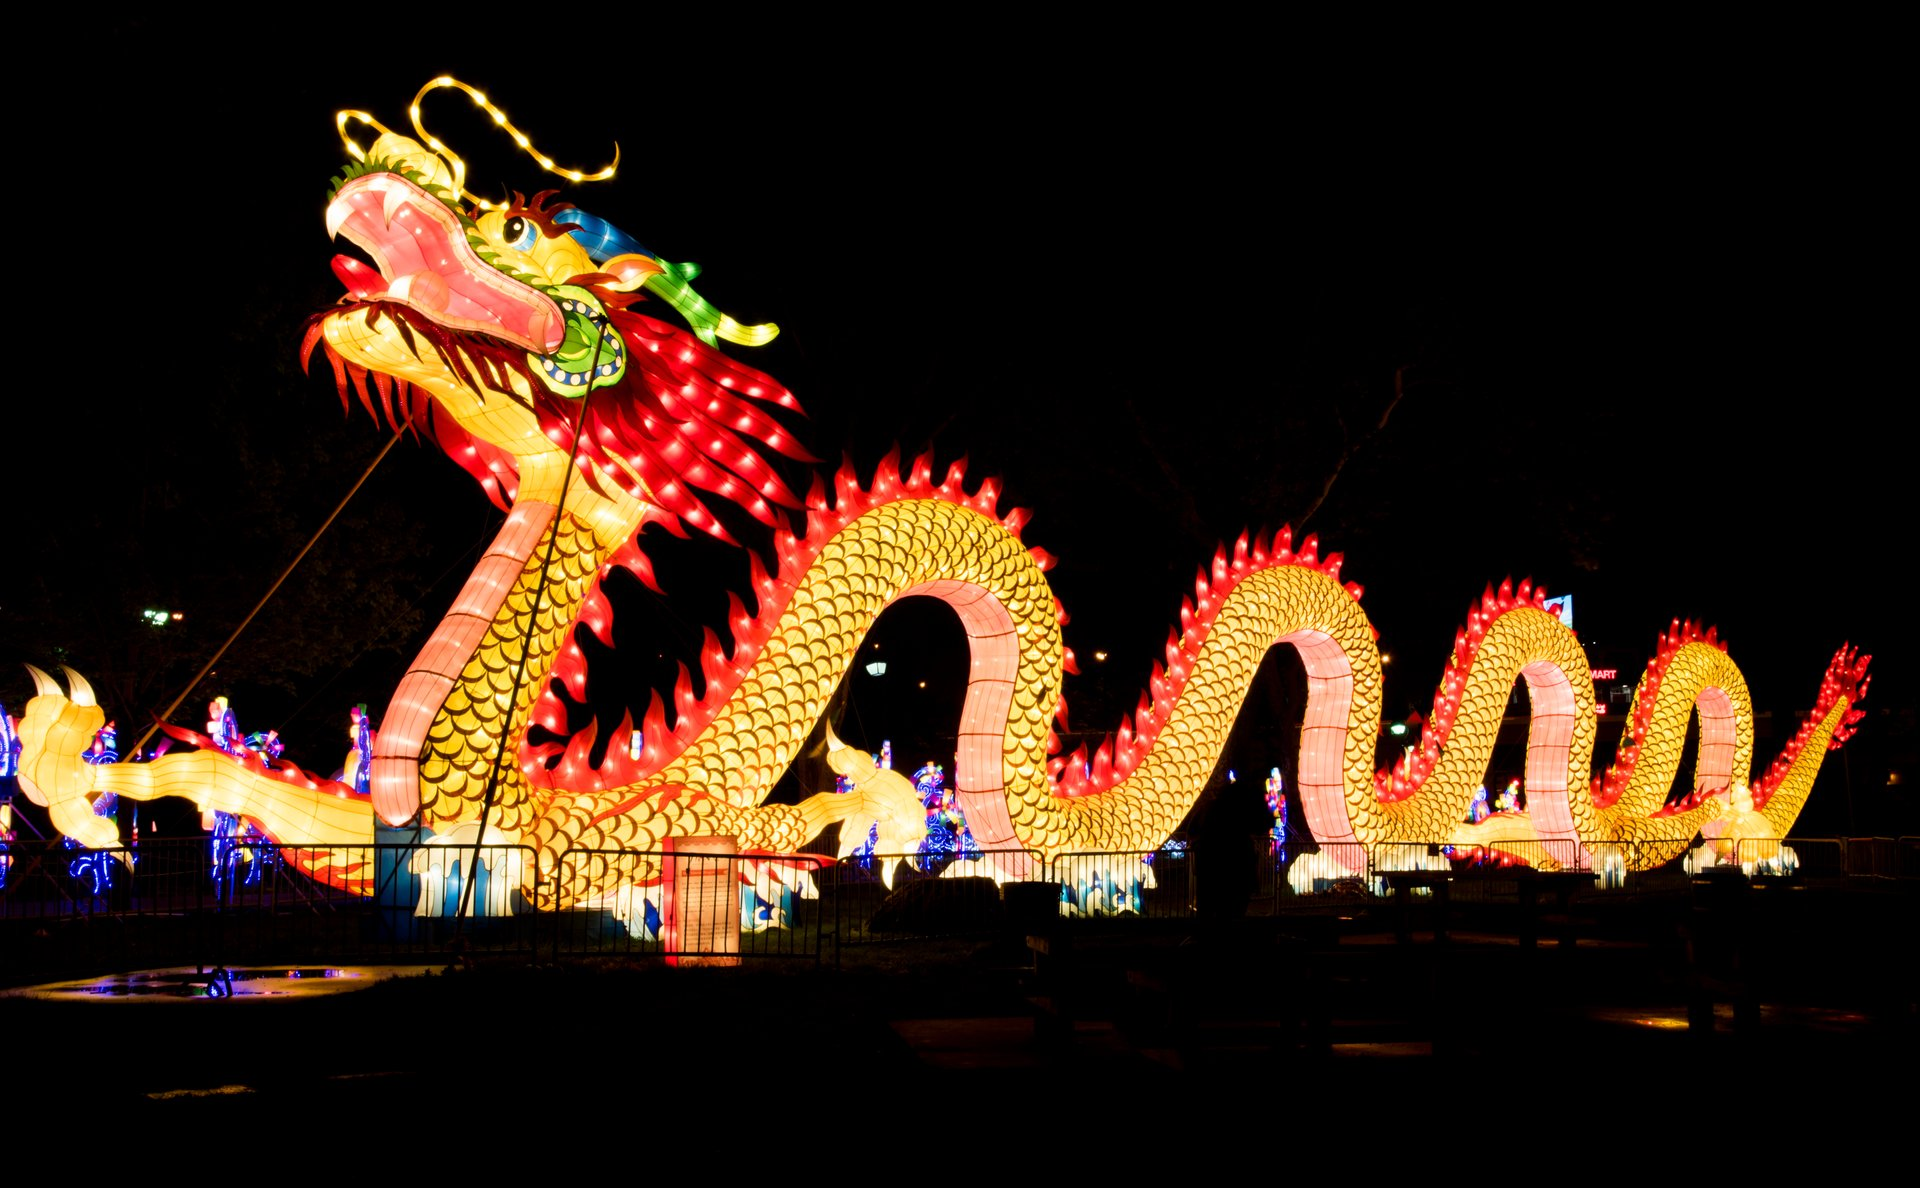 Dragon at Philadelphia Chinese Lantern Festival, Franklin Square 2020